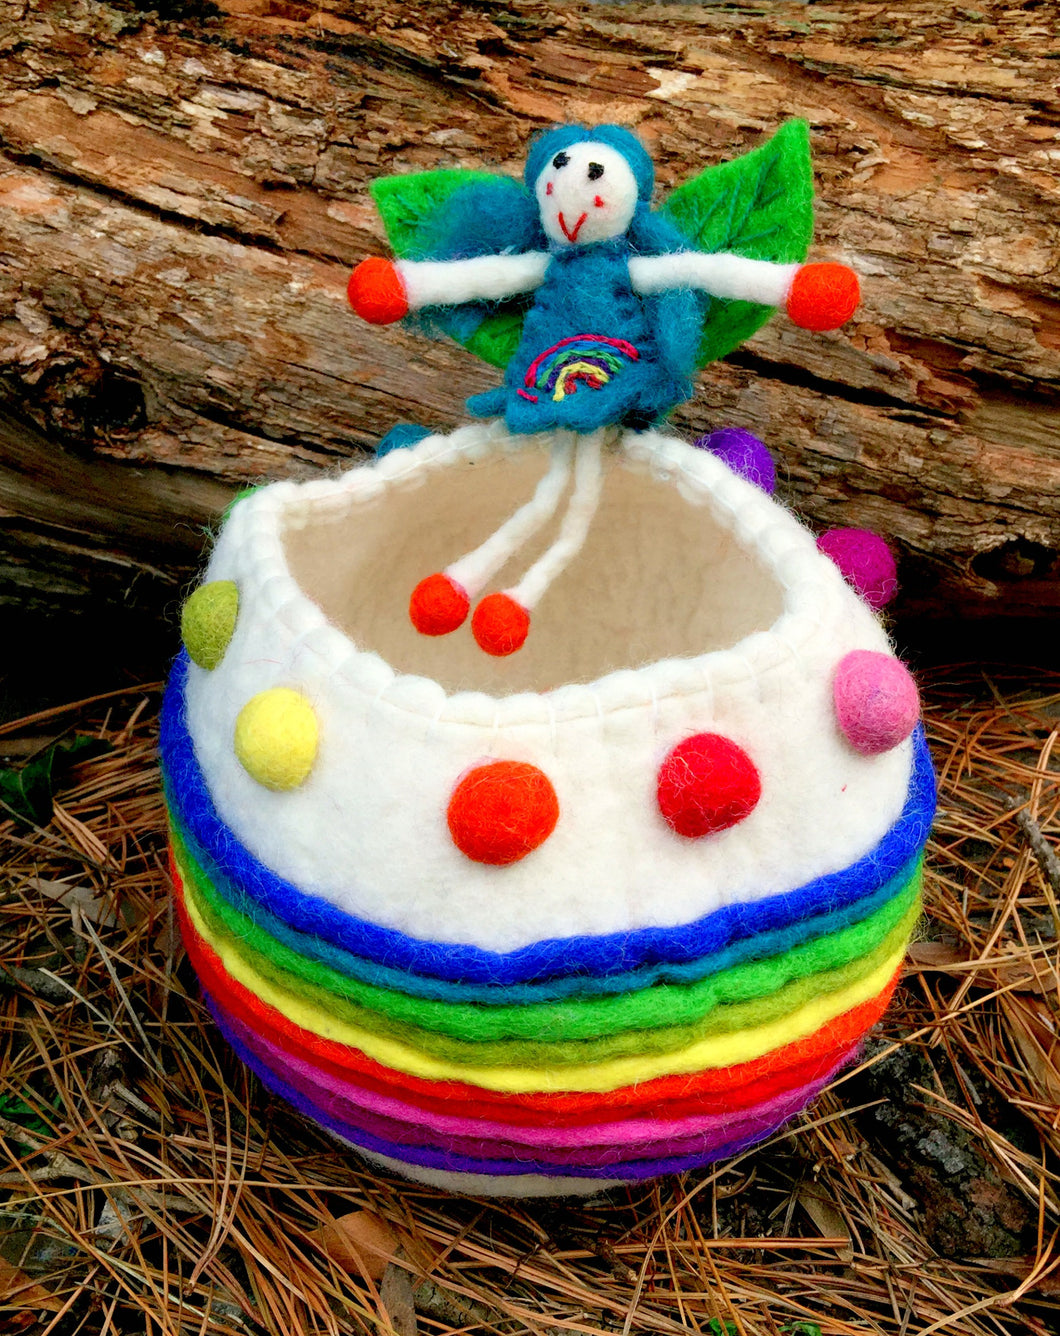 Miss Rainbow faery wishing bowl